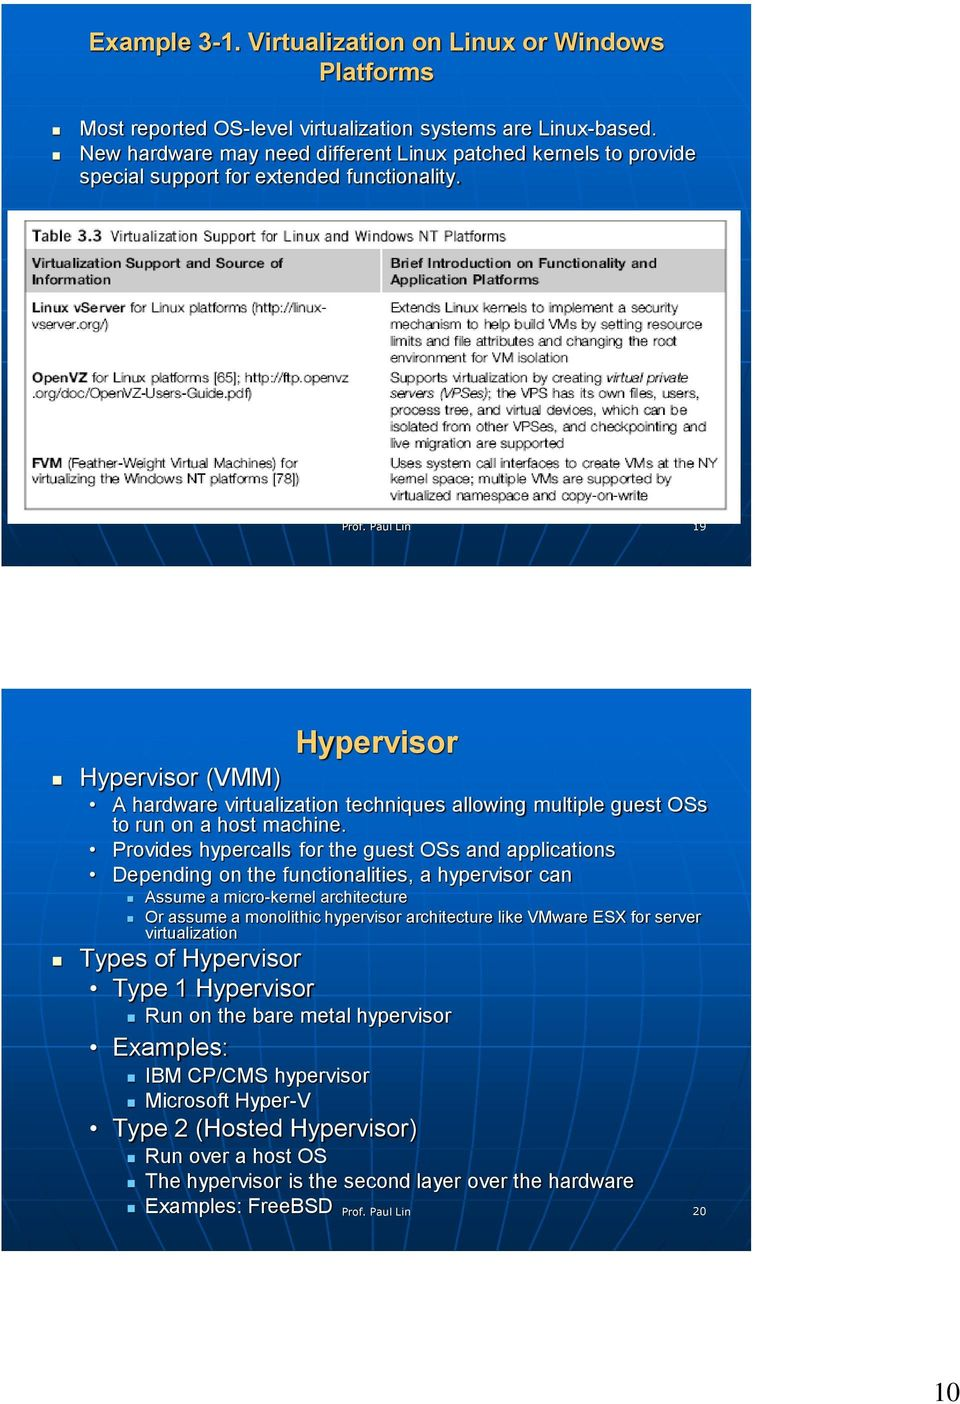 19 Hypervisor Hypervisor (VMM) A hardware virtualization techniques allowing multiple guest OSs to run on a host machine.